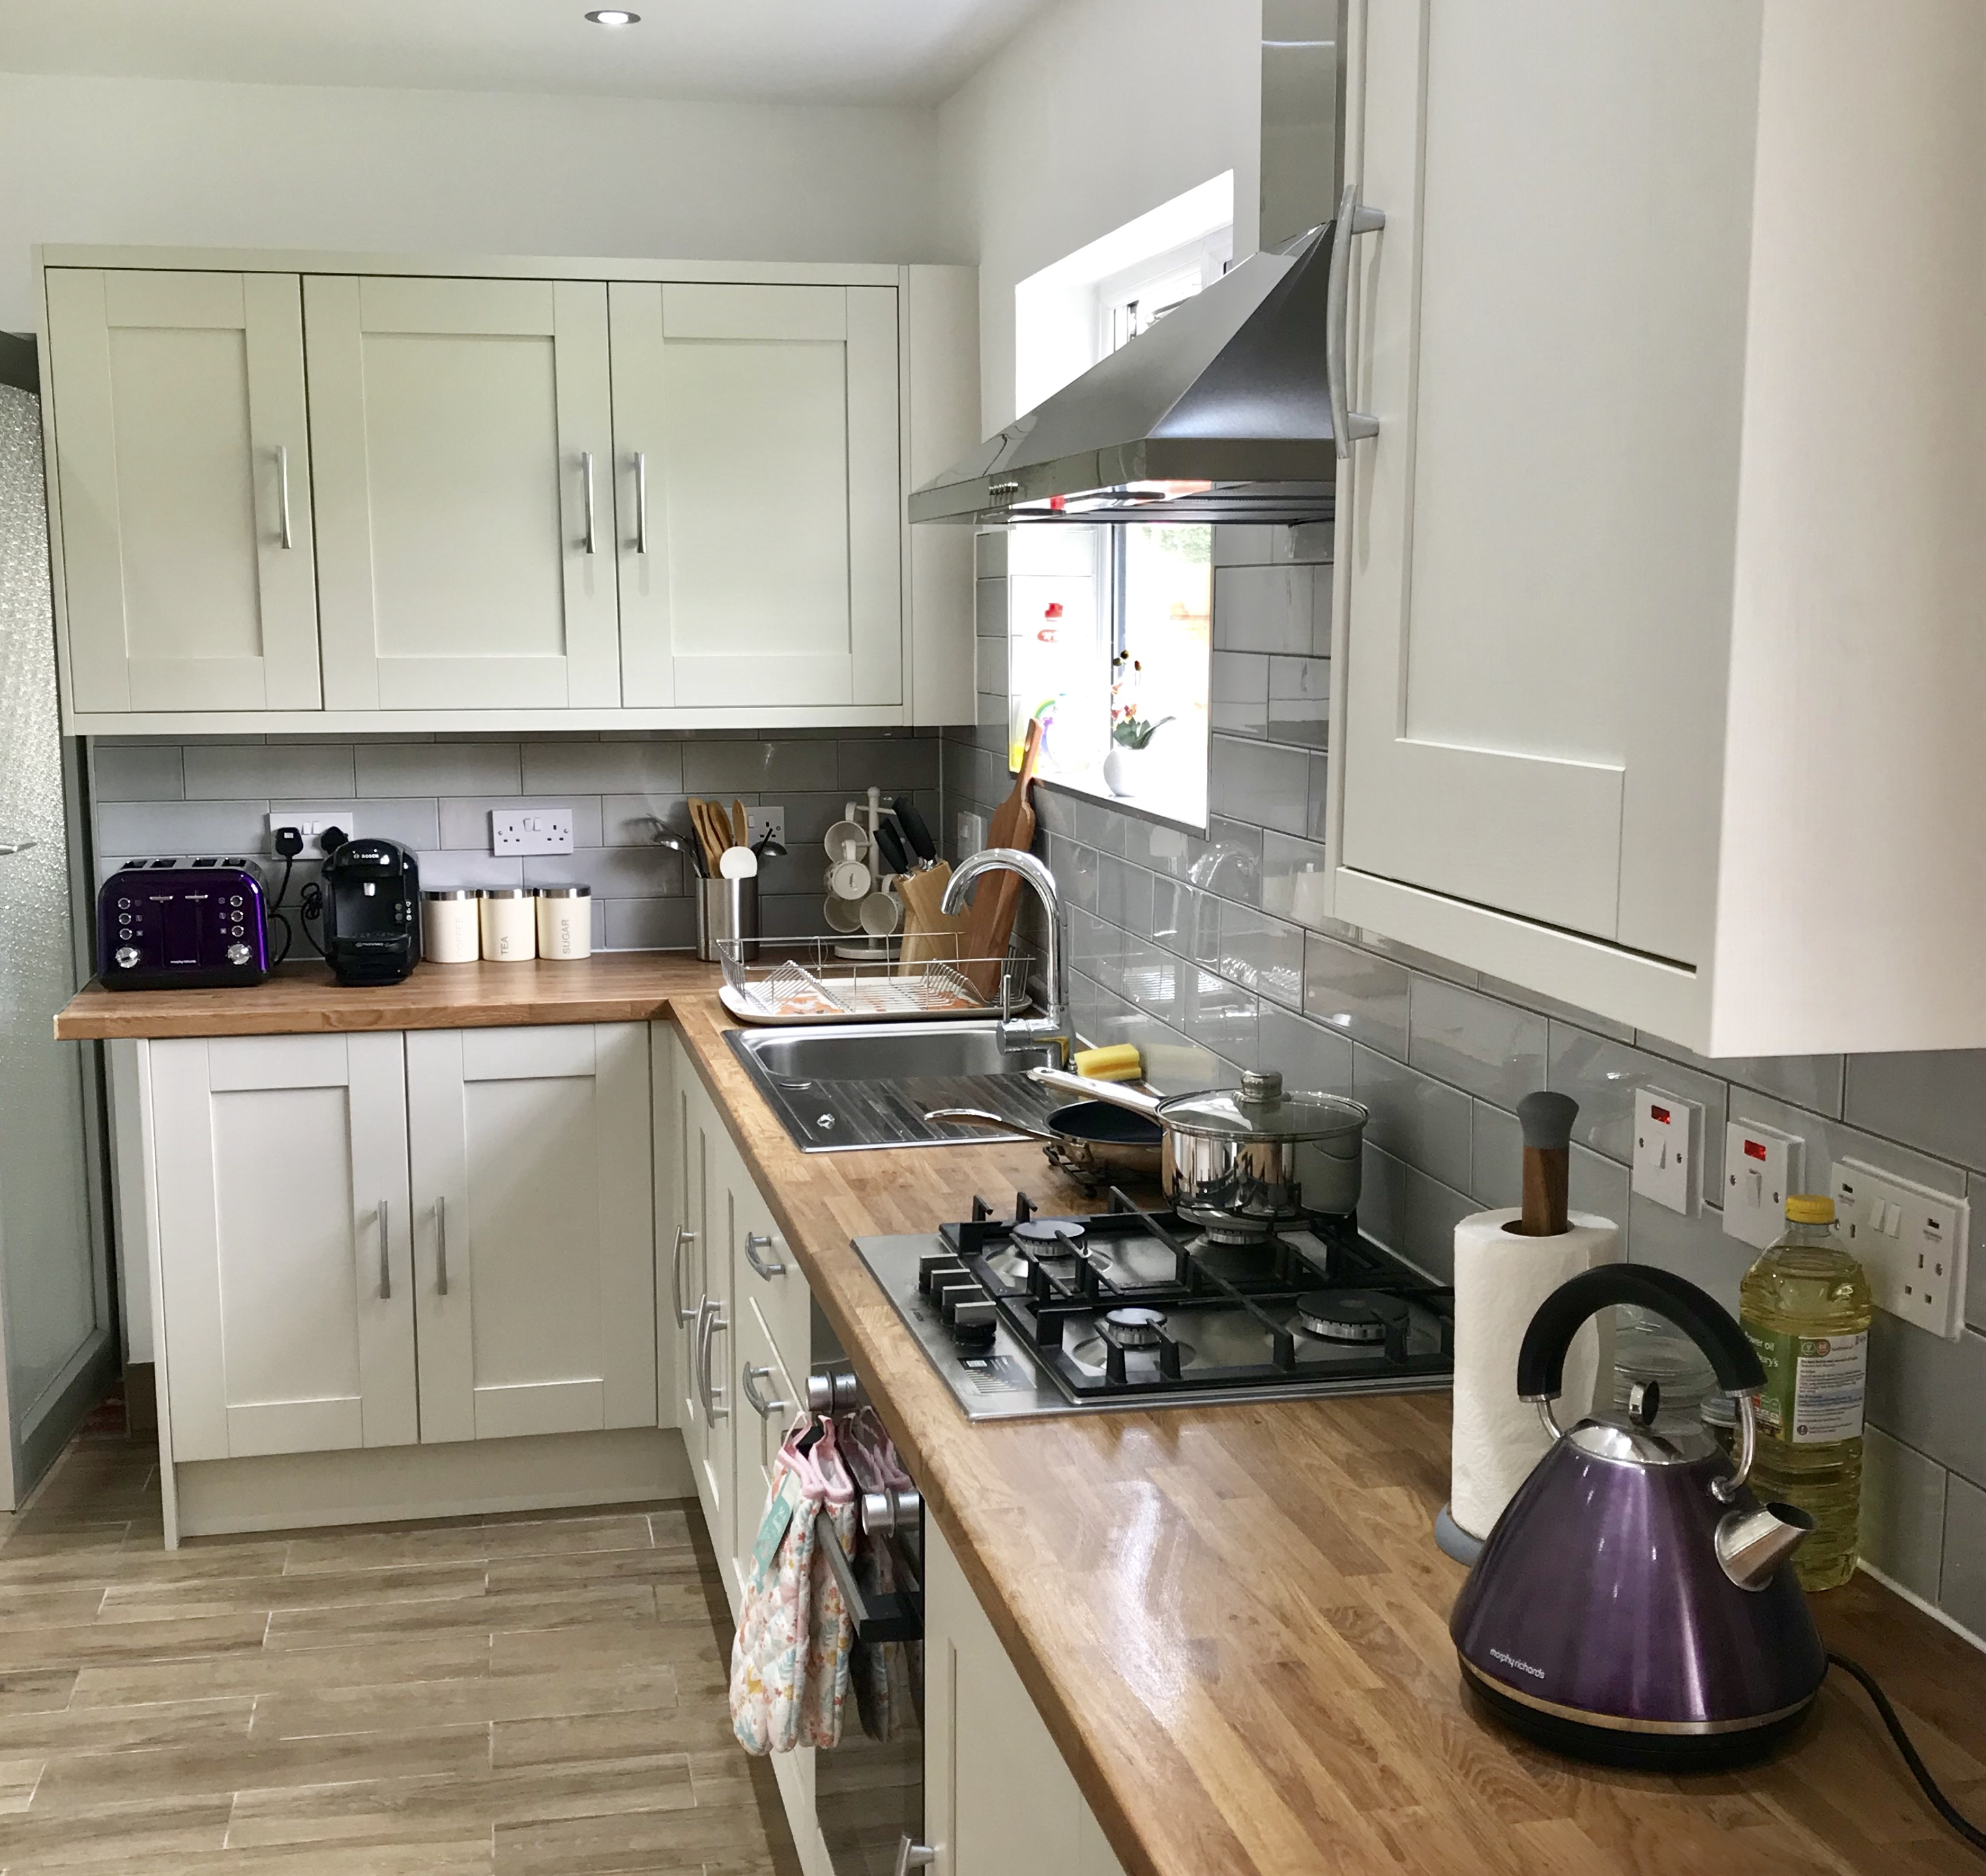 The Woodfarm Lodge - 3 Bedroom House with parking - Oxford photo 20326153